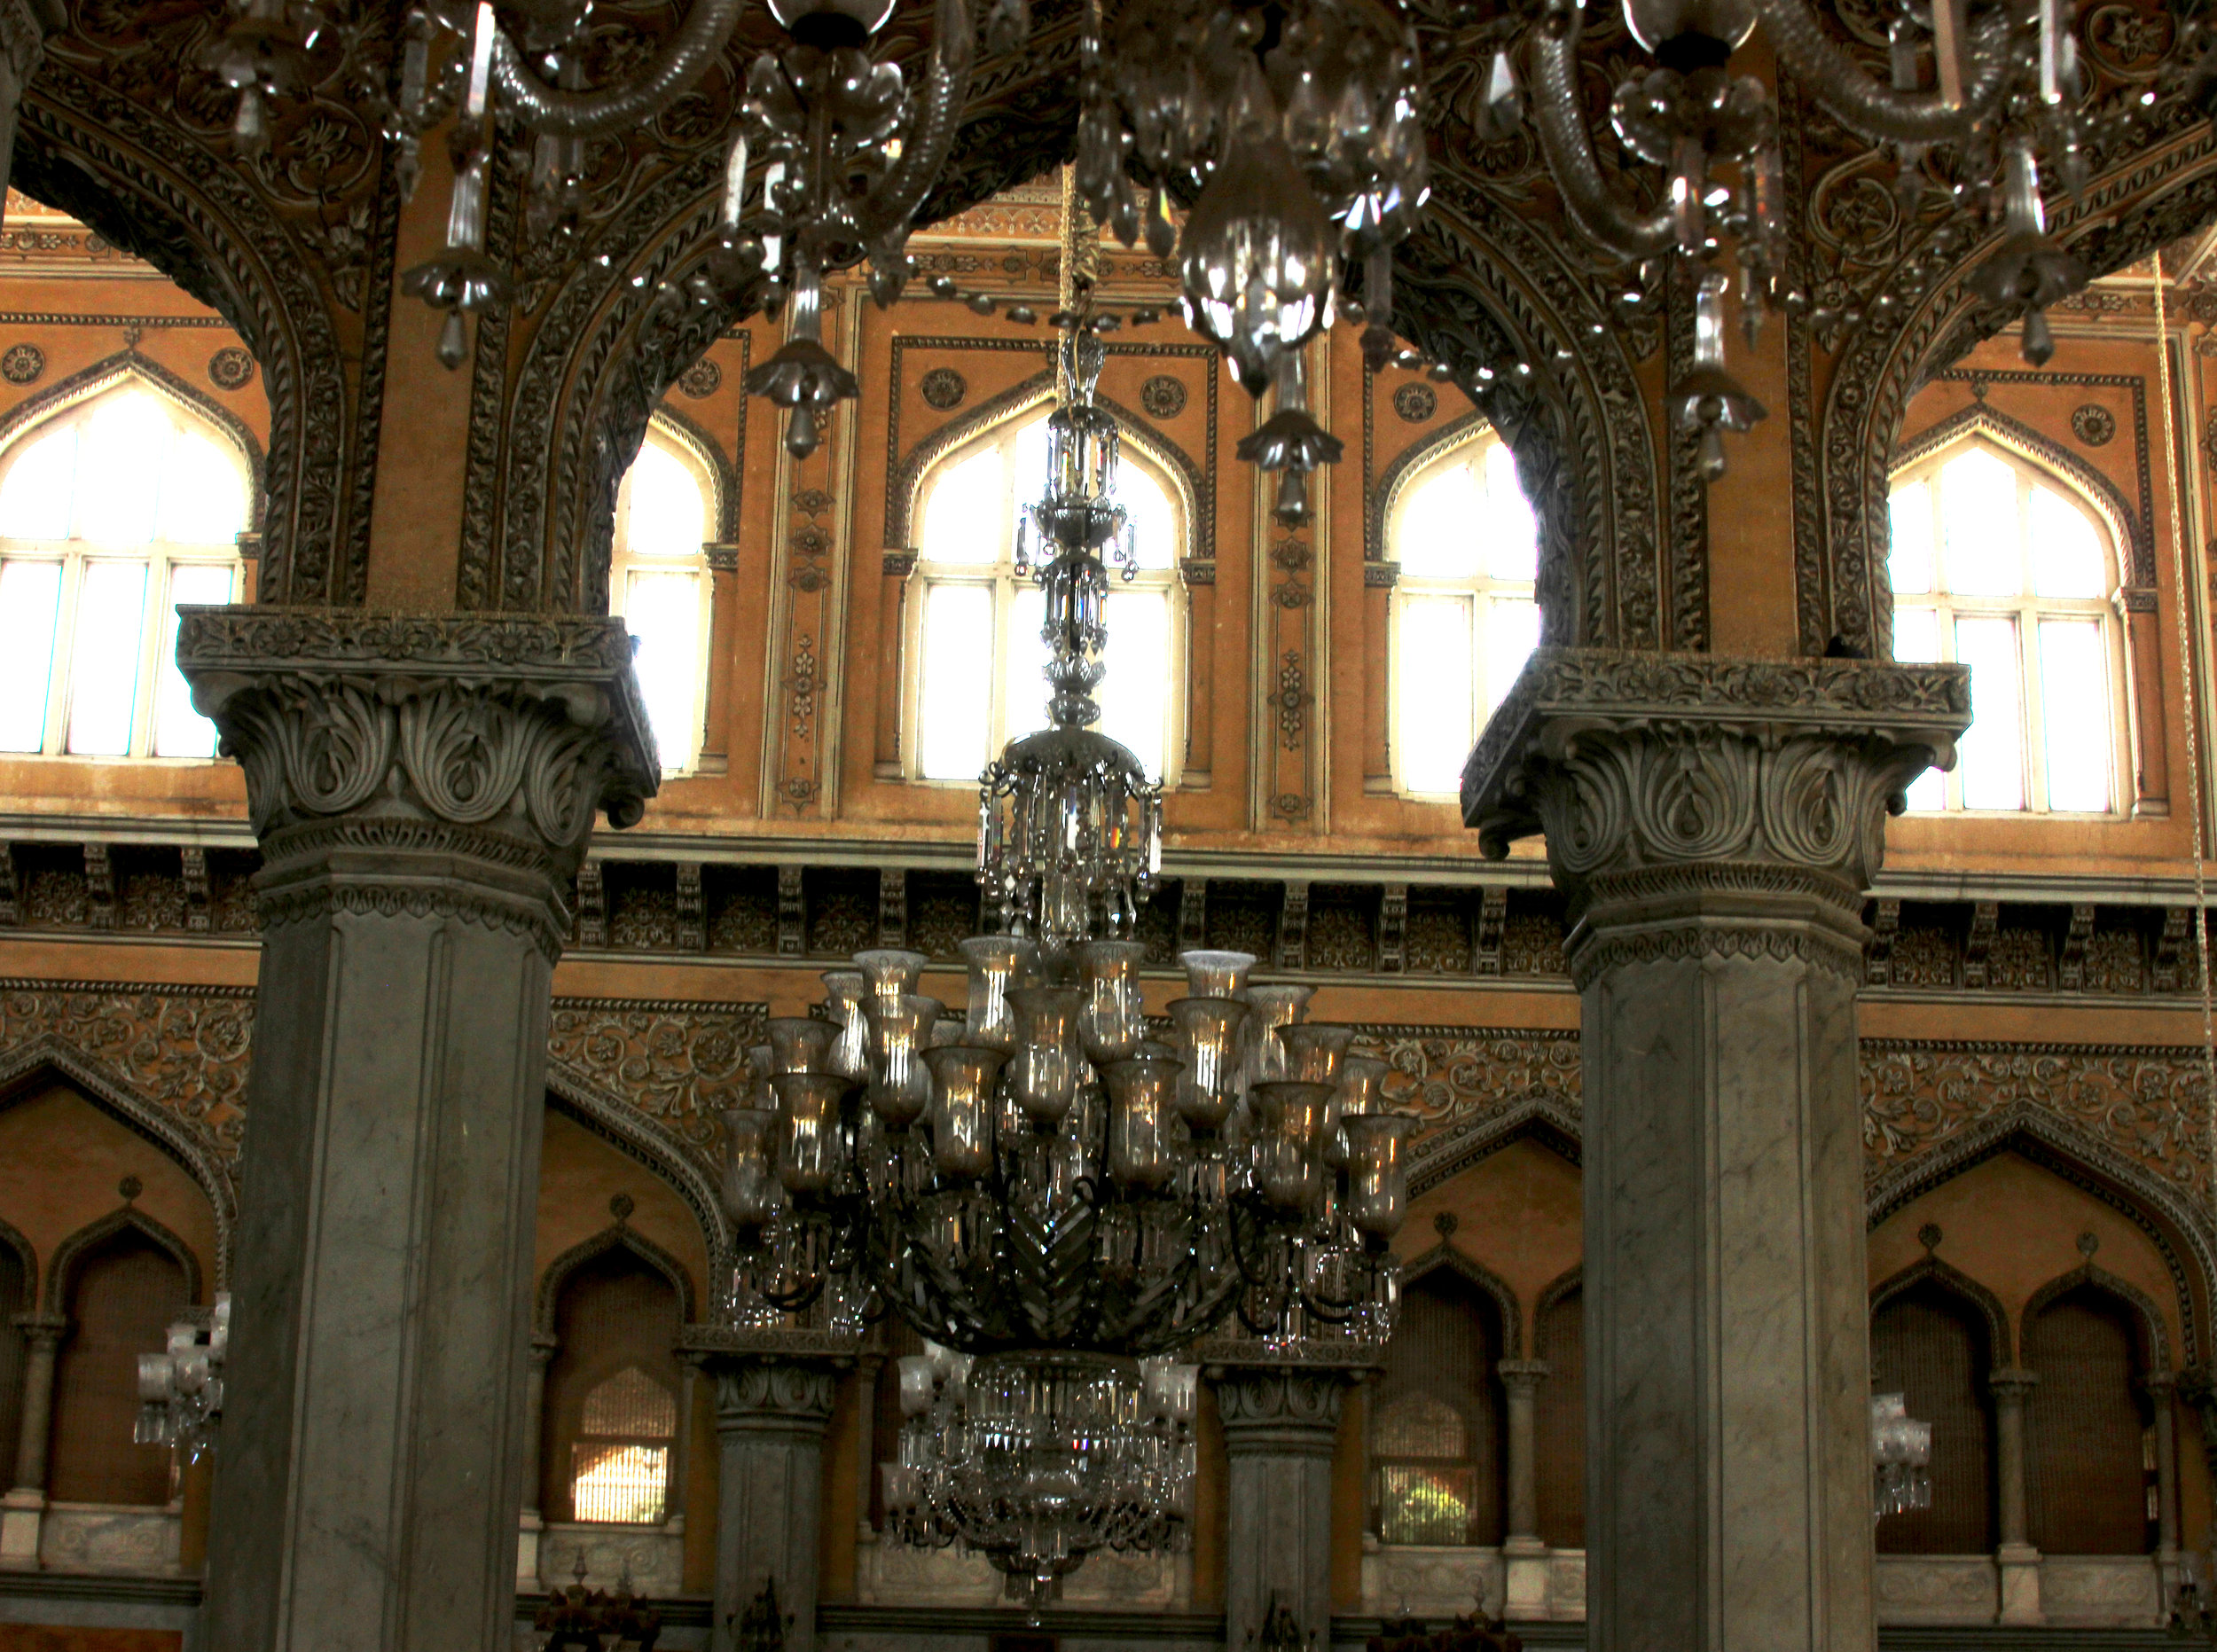 Chowmahalla Palace interiors and Chandeliers